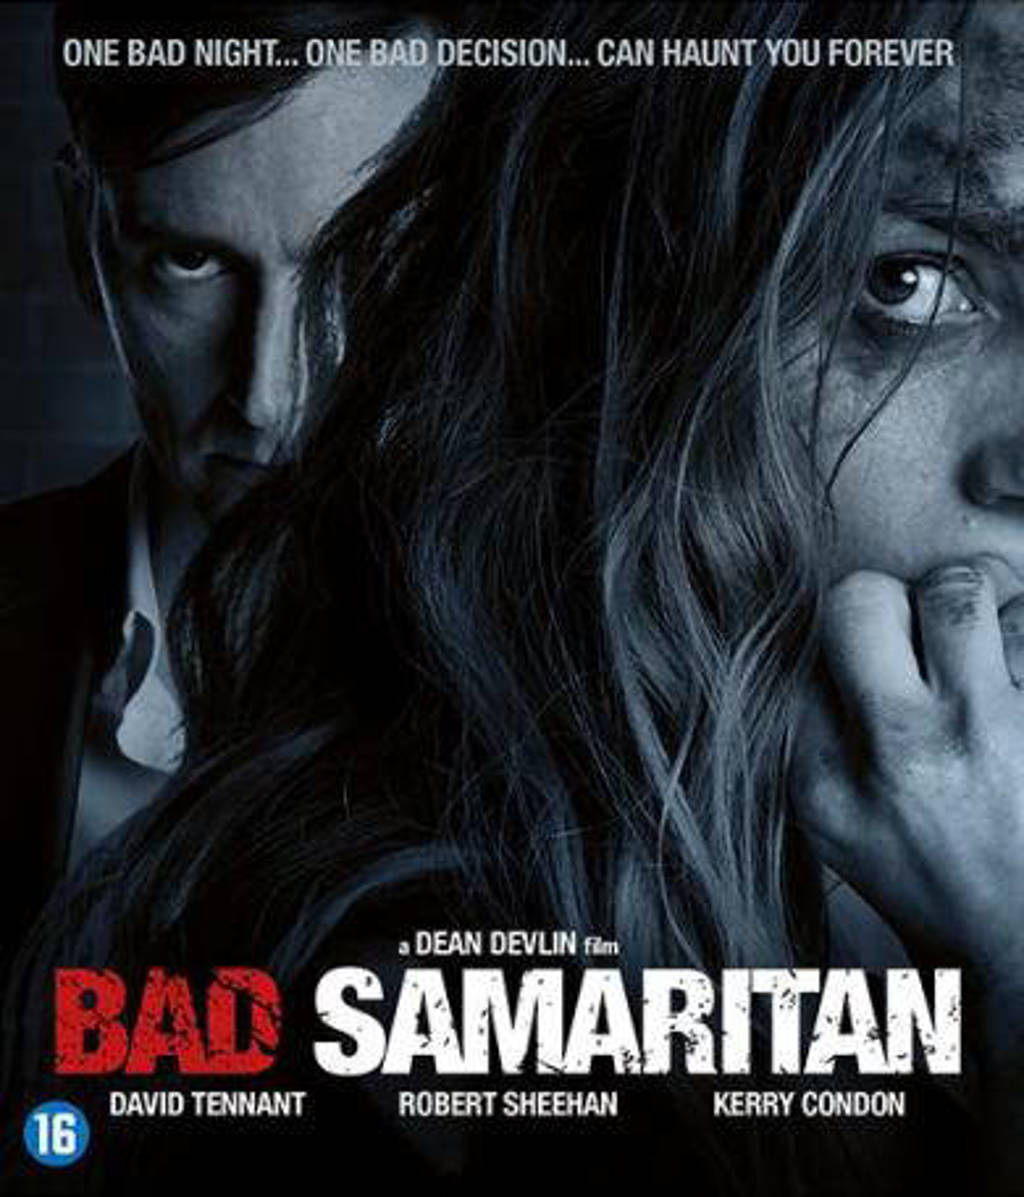 Bad Samaritan (Blu-ray)